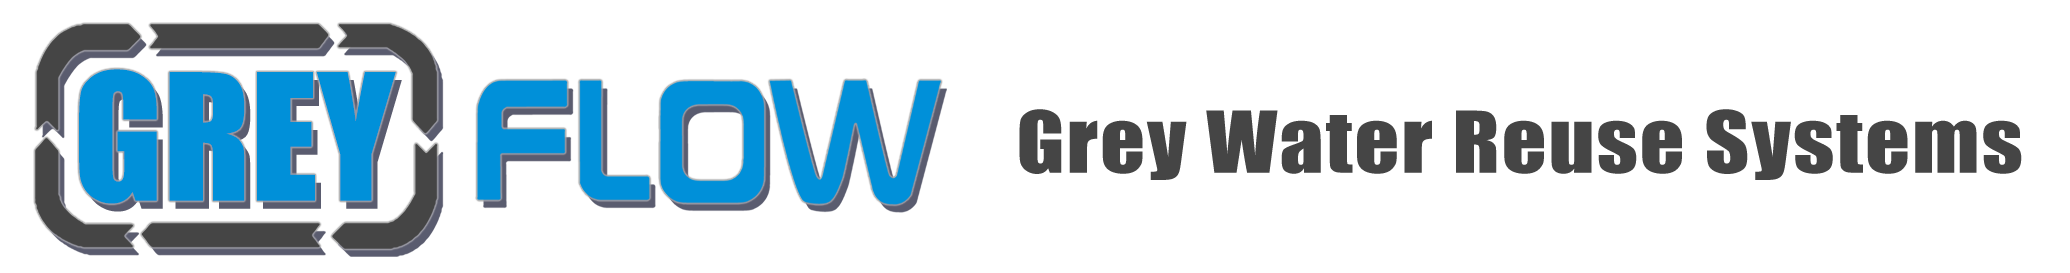 Greyflow Greywater Systems